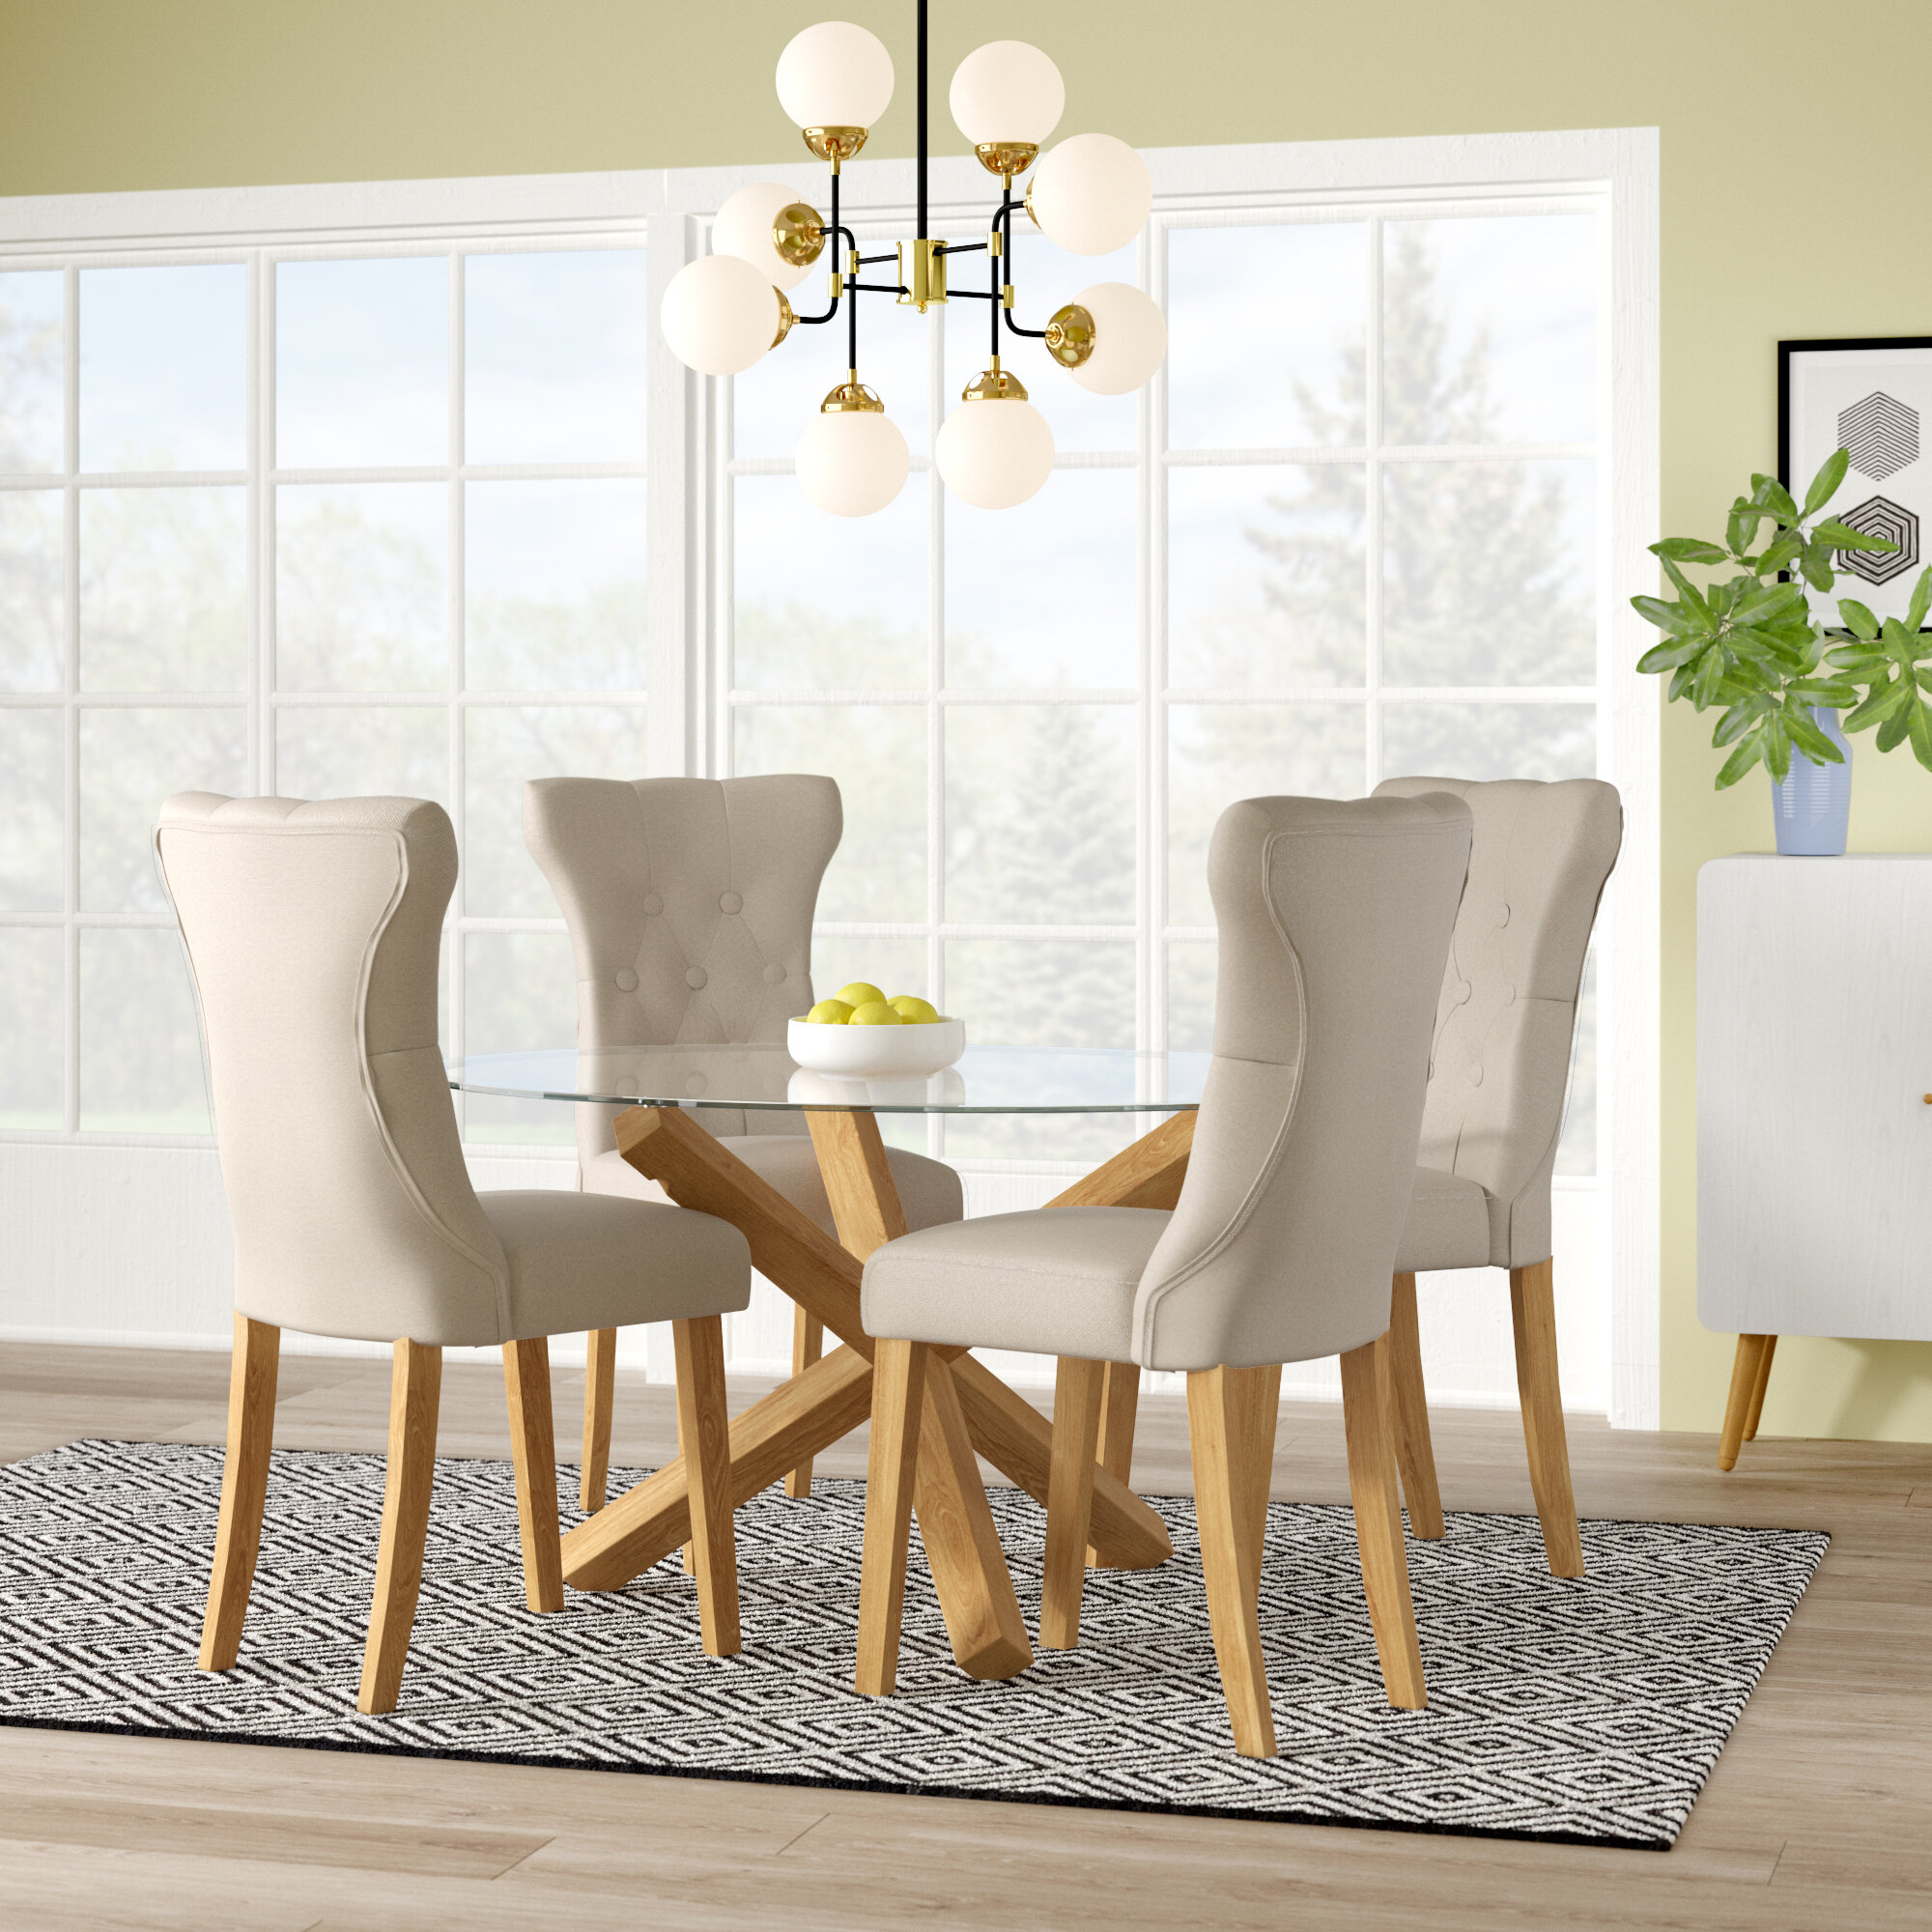 Stupendous Oporto Dining Set With 4 Chairs Download Free Architecture Designs Viewormadebymaigaardcom